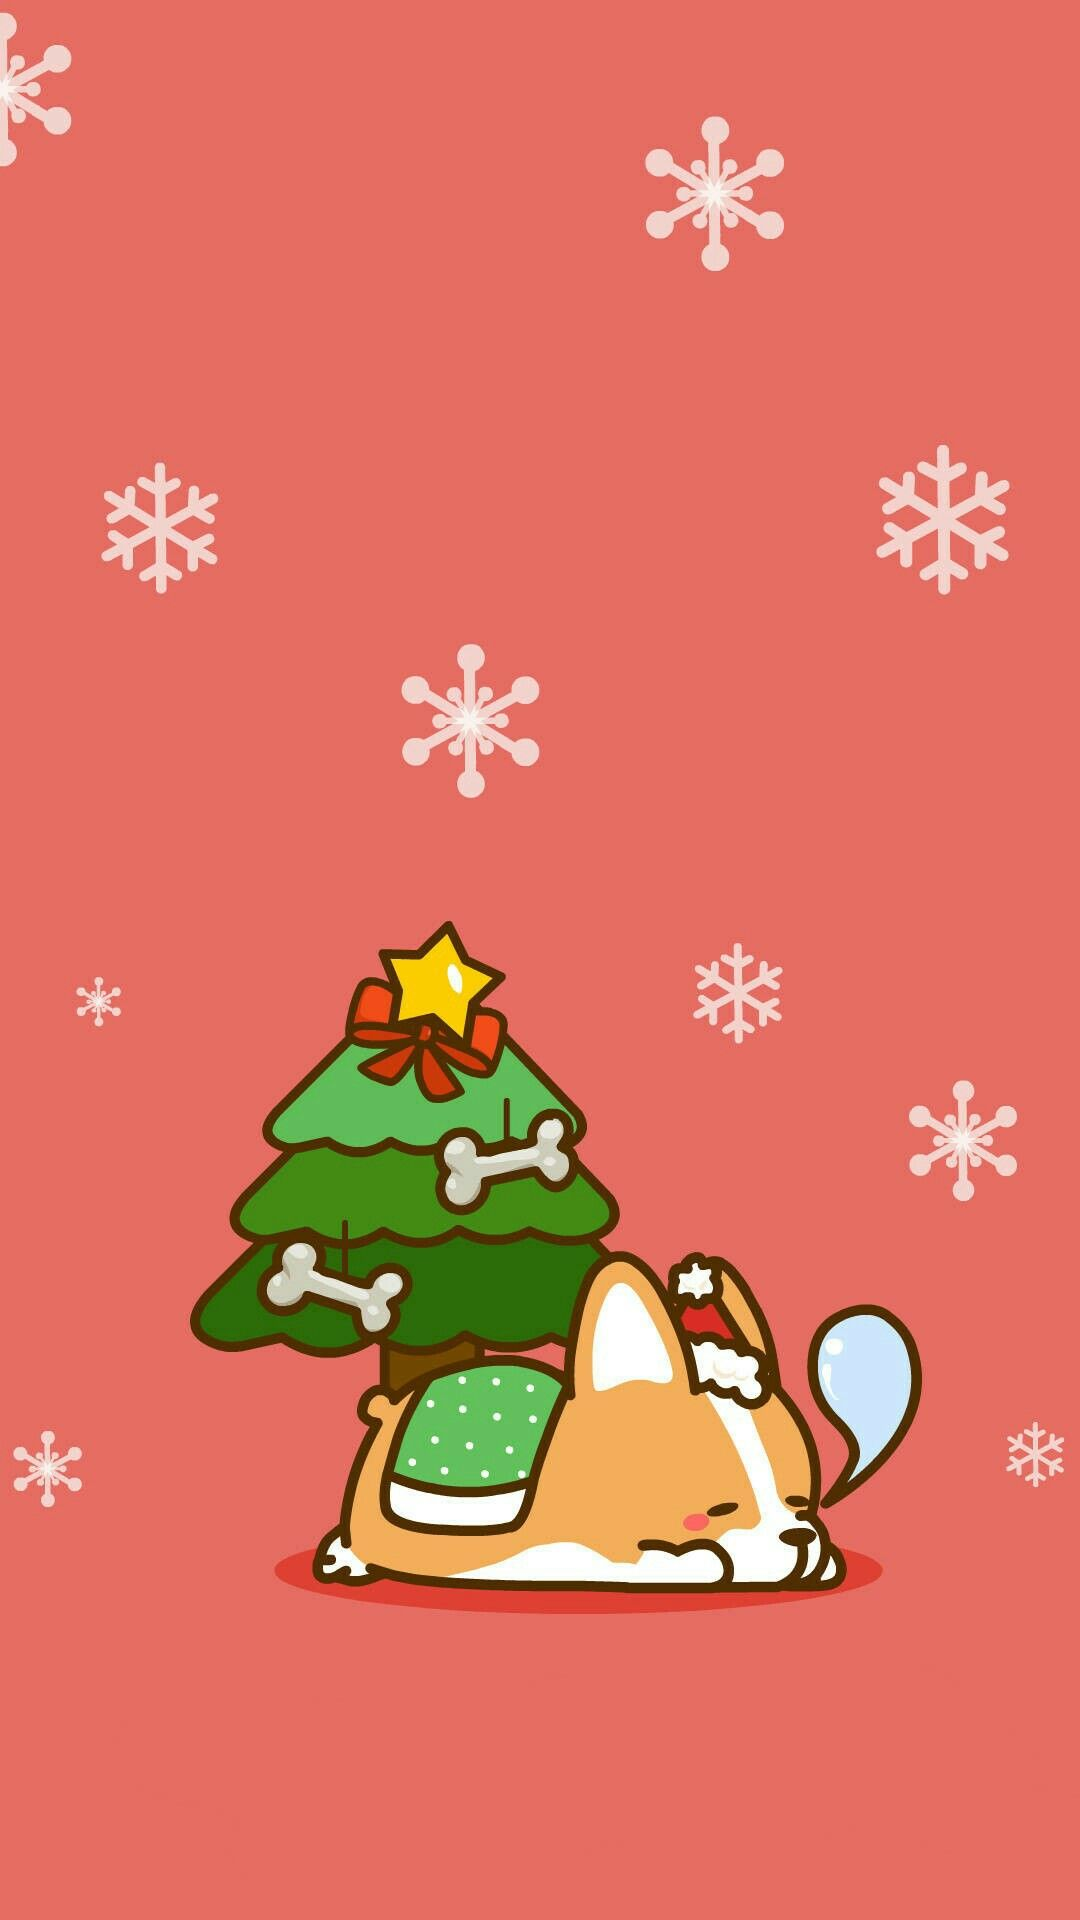 Christmas Wallpapers For Iphone Best Christmas Backgrounds Free Download Chr Christmas Phone Wallpaper Cute Christmas Wallpaper Wallpaper Iphone Christmas